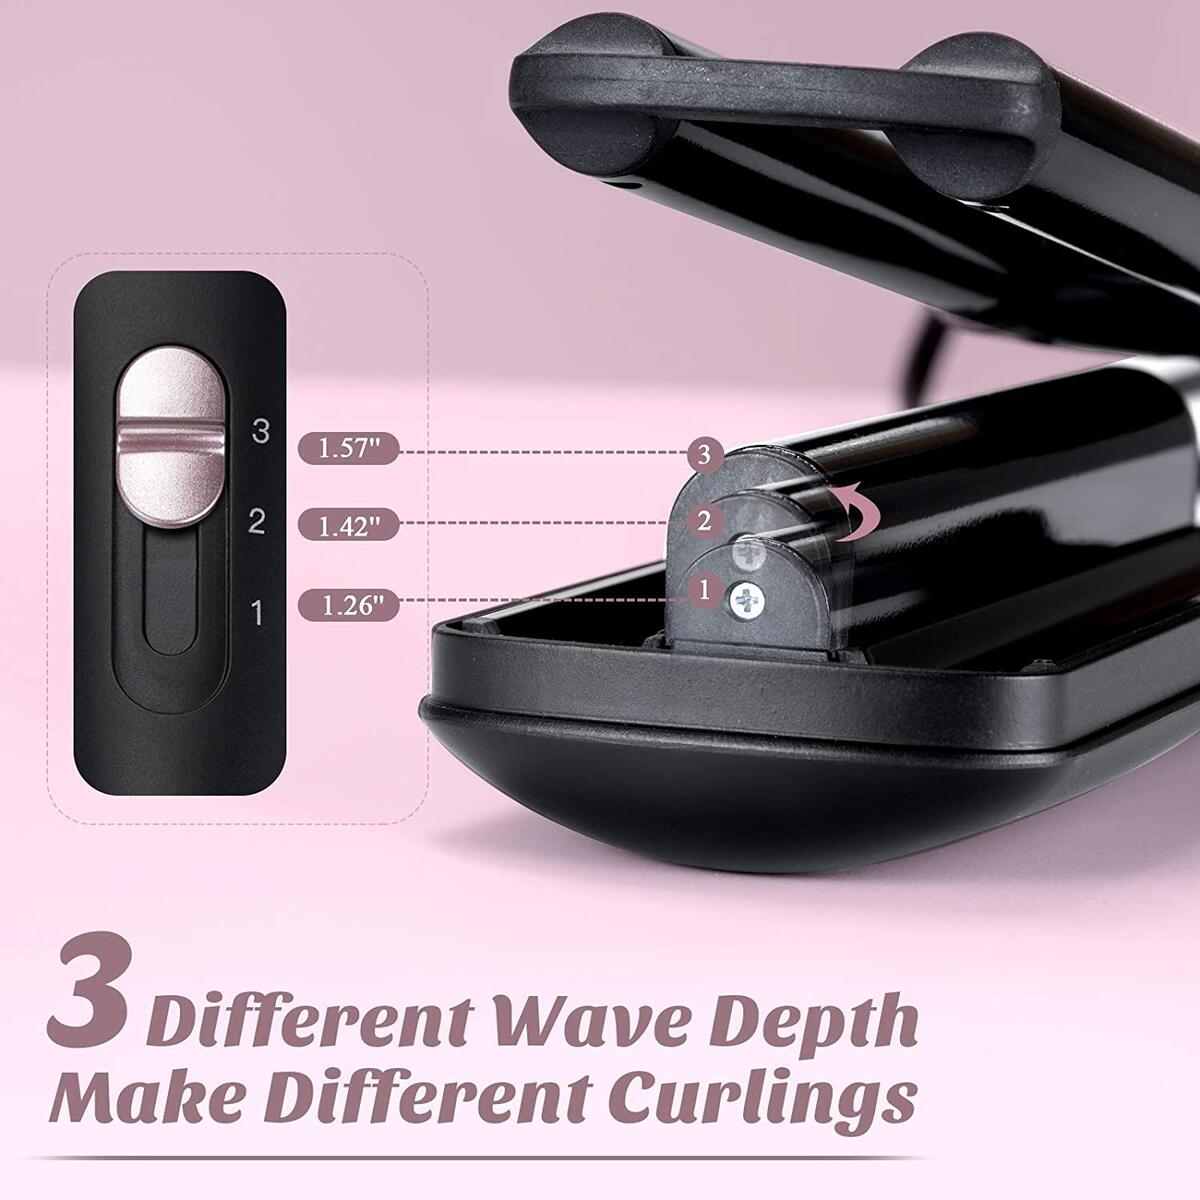 FINYOU 3 Barrel Curling Wand, Ceramic Tourmaline Hair Curling Iron, Fast Heating Adjustable Temperature Crimper Hair Iron, Professional Beach Waves Curling Iron for Multiple Waves(Black)